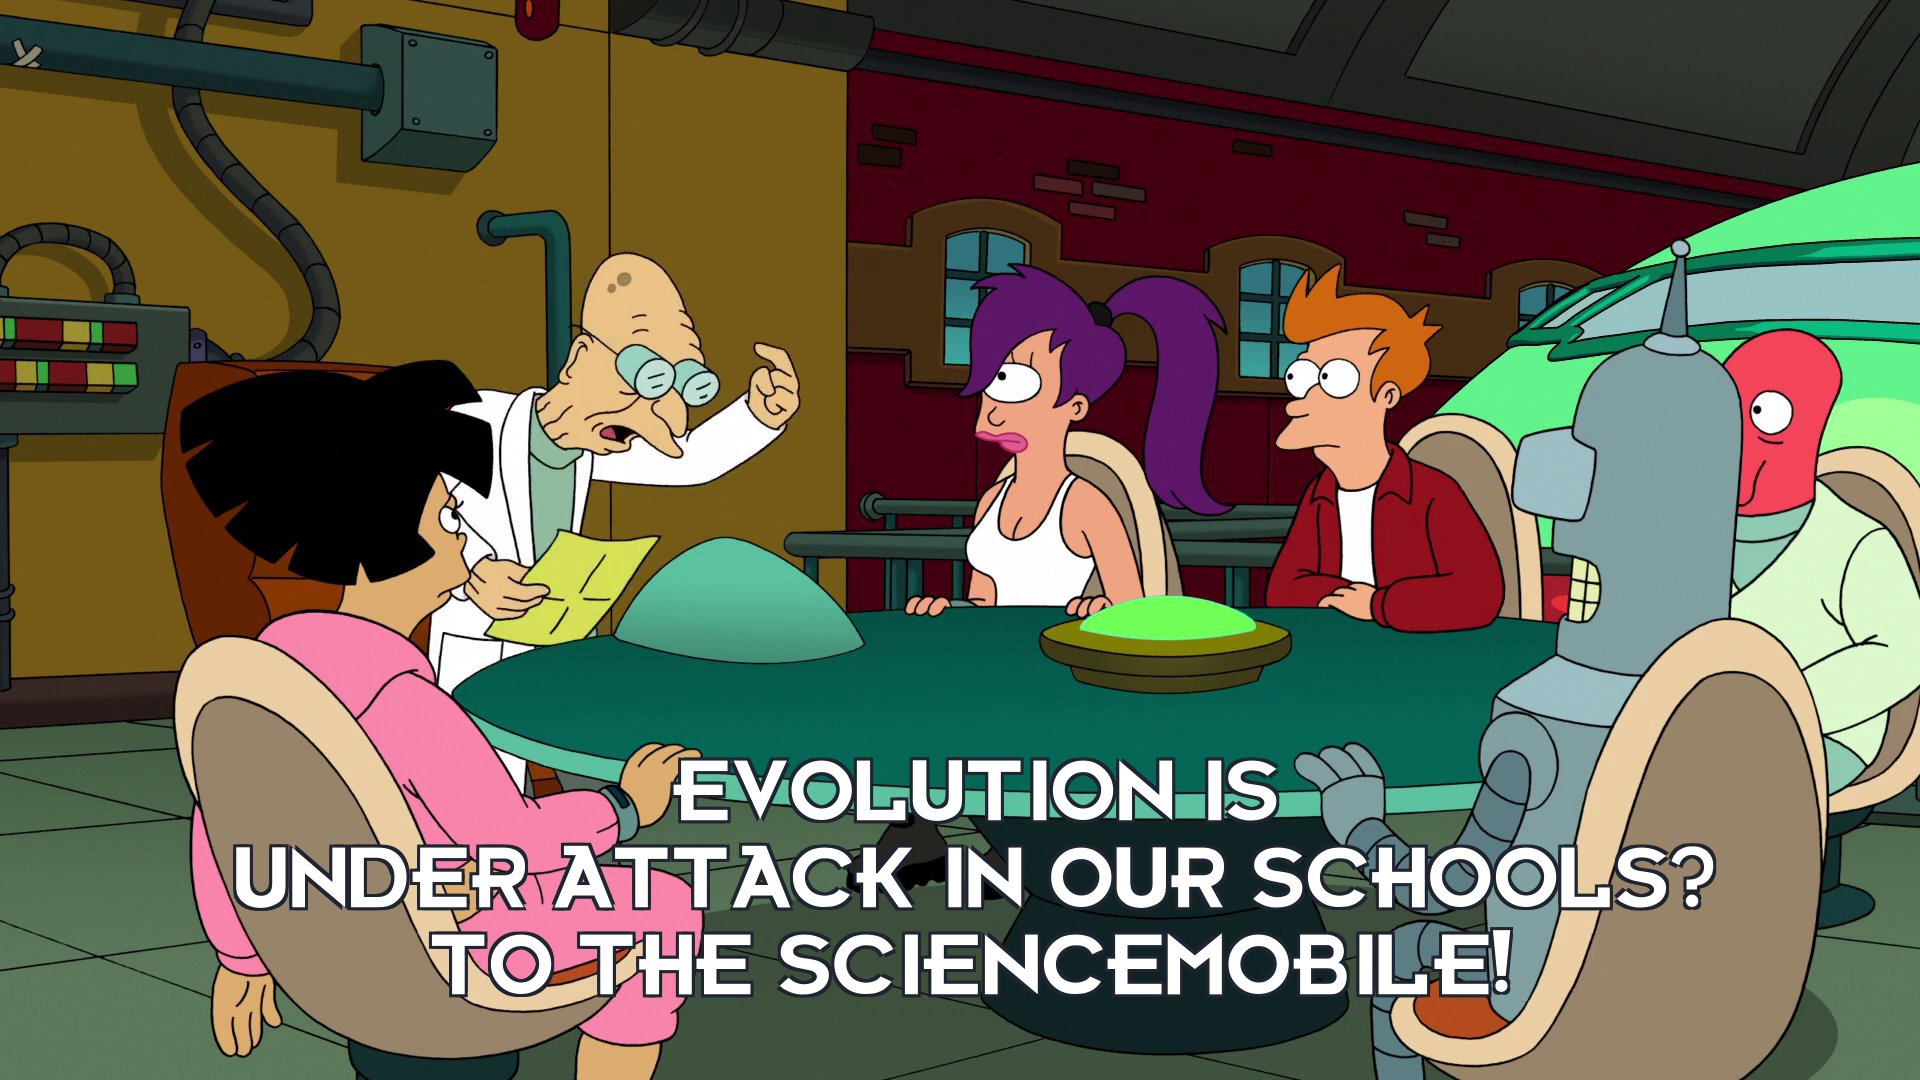 Prof Hubert J Farnsworth: Evolution is under attack in our schools? To the sciencemobile!